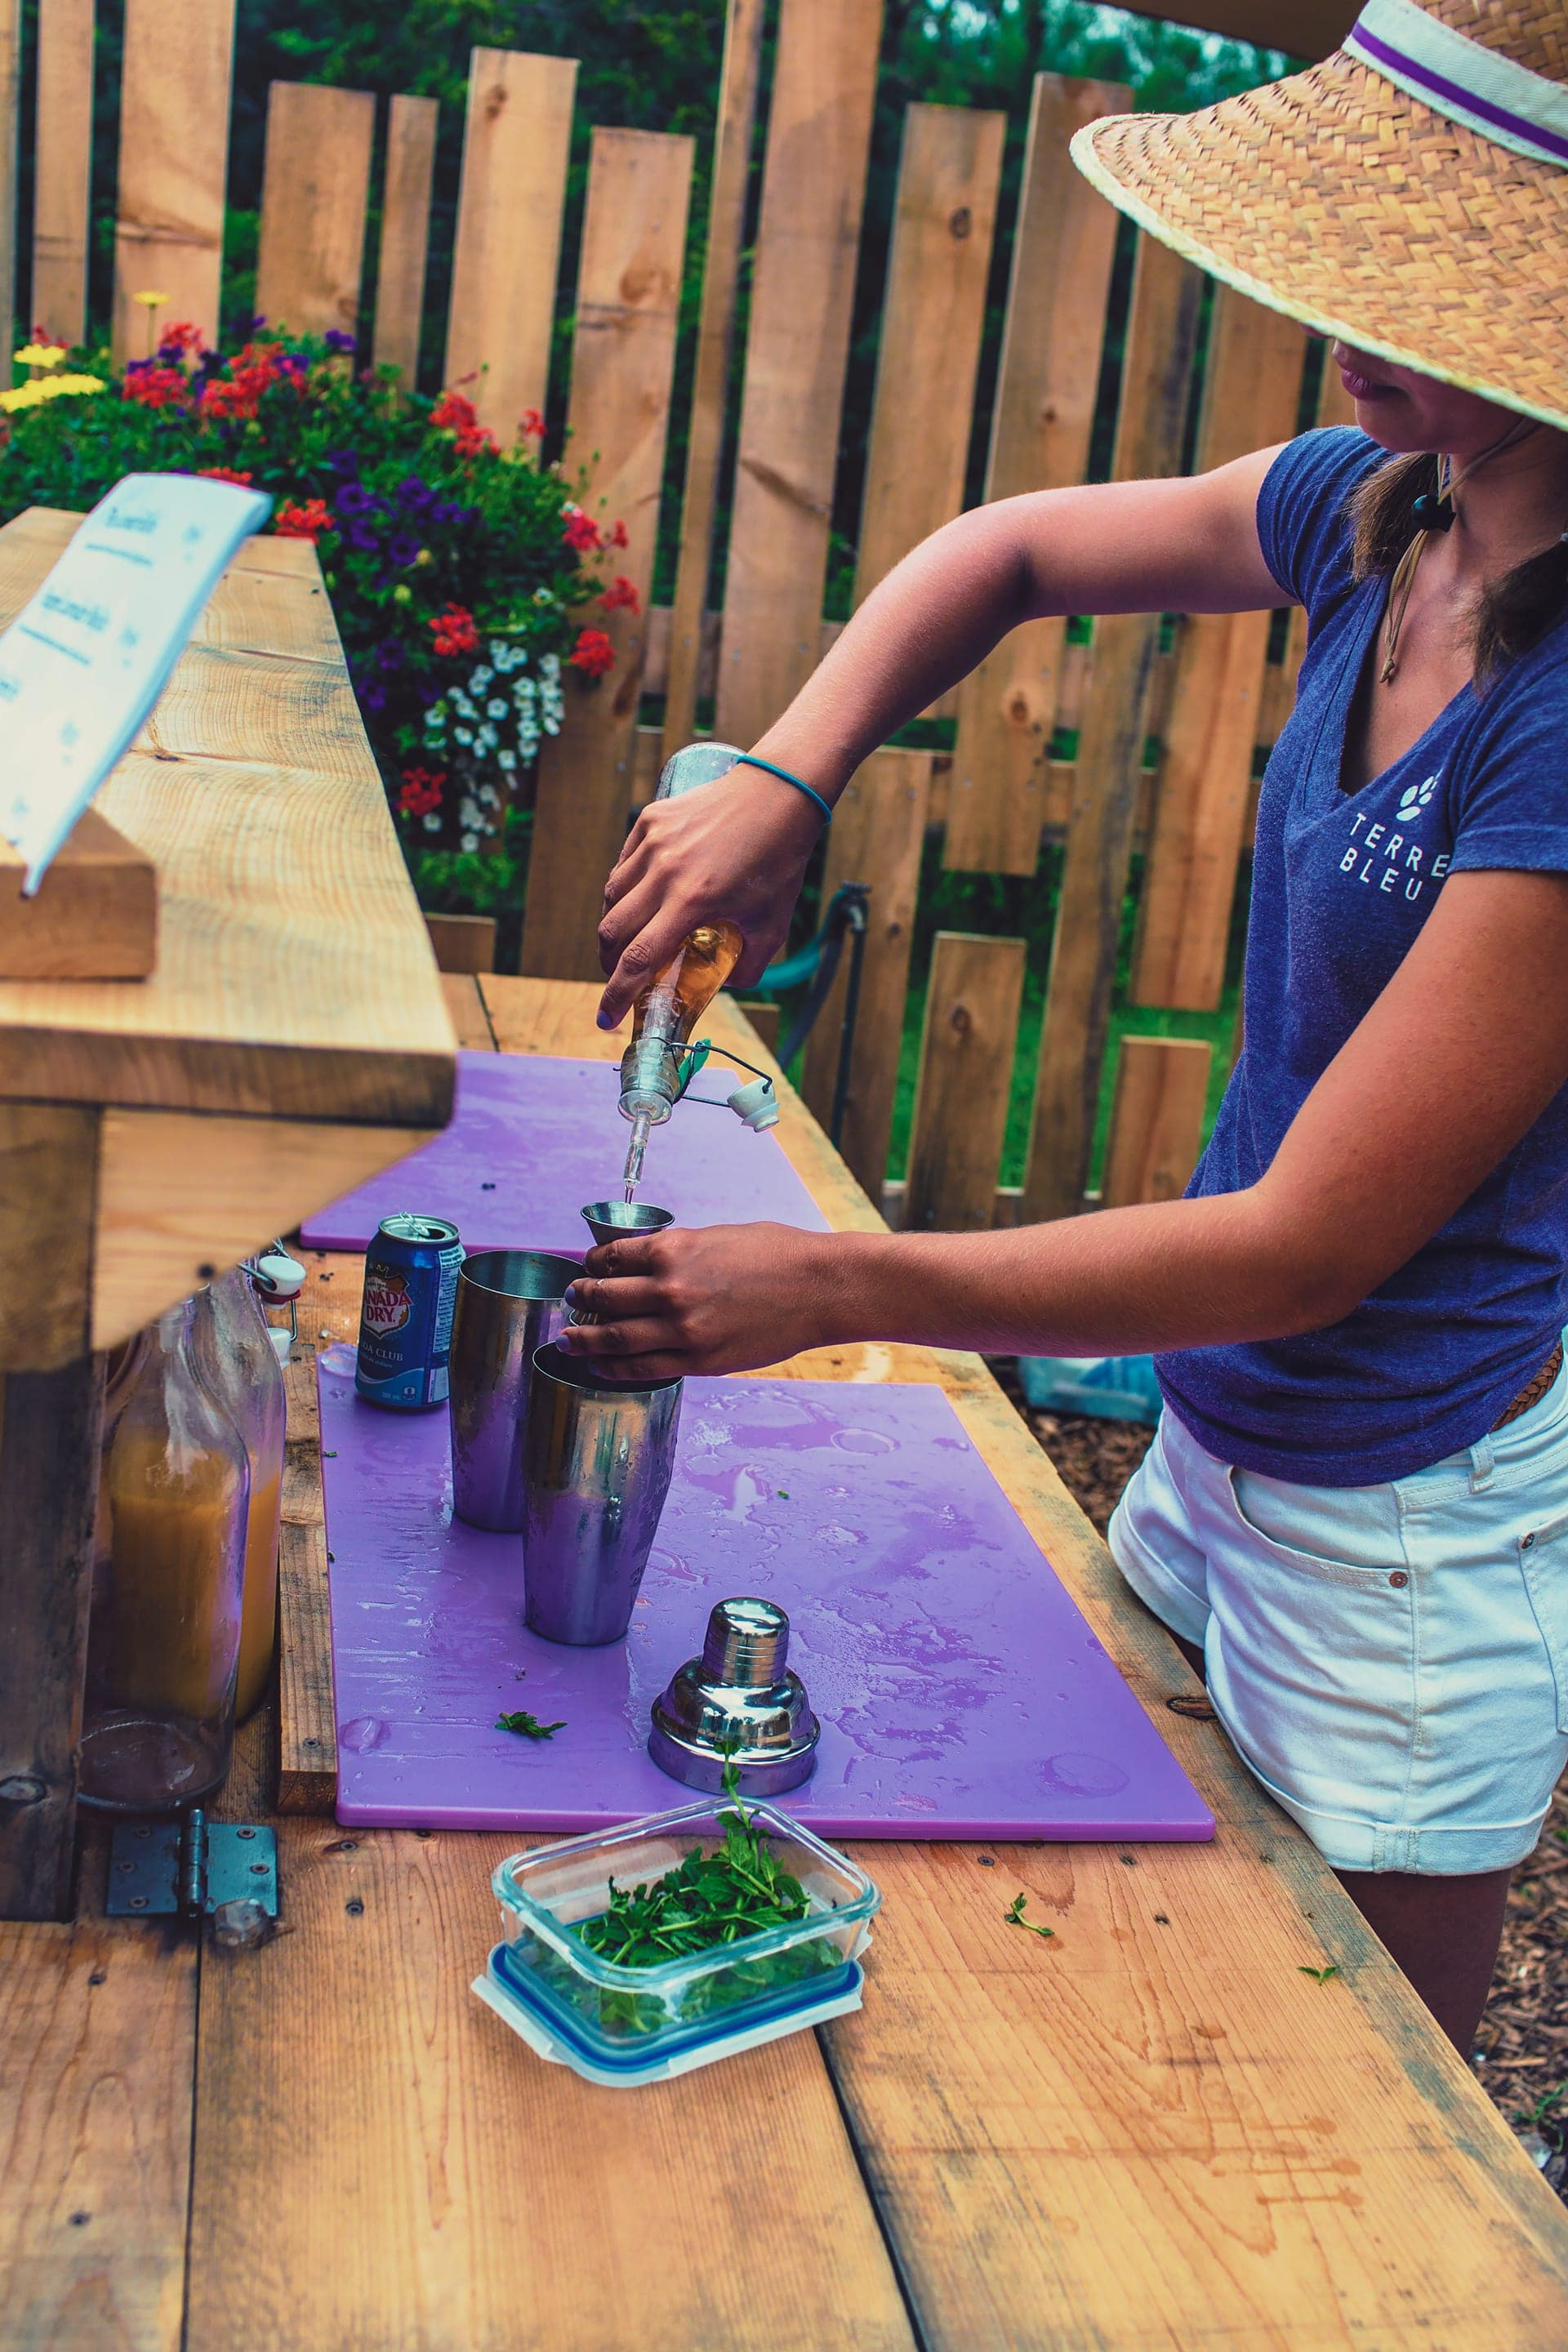 Lavender mojito being made at Terre Bleu Lavender Farm